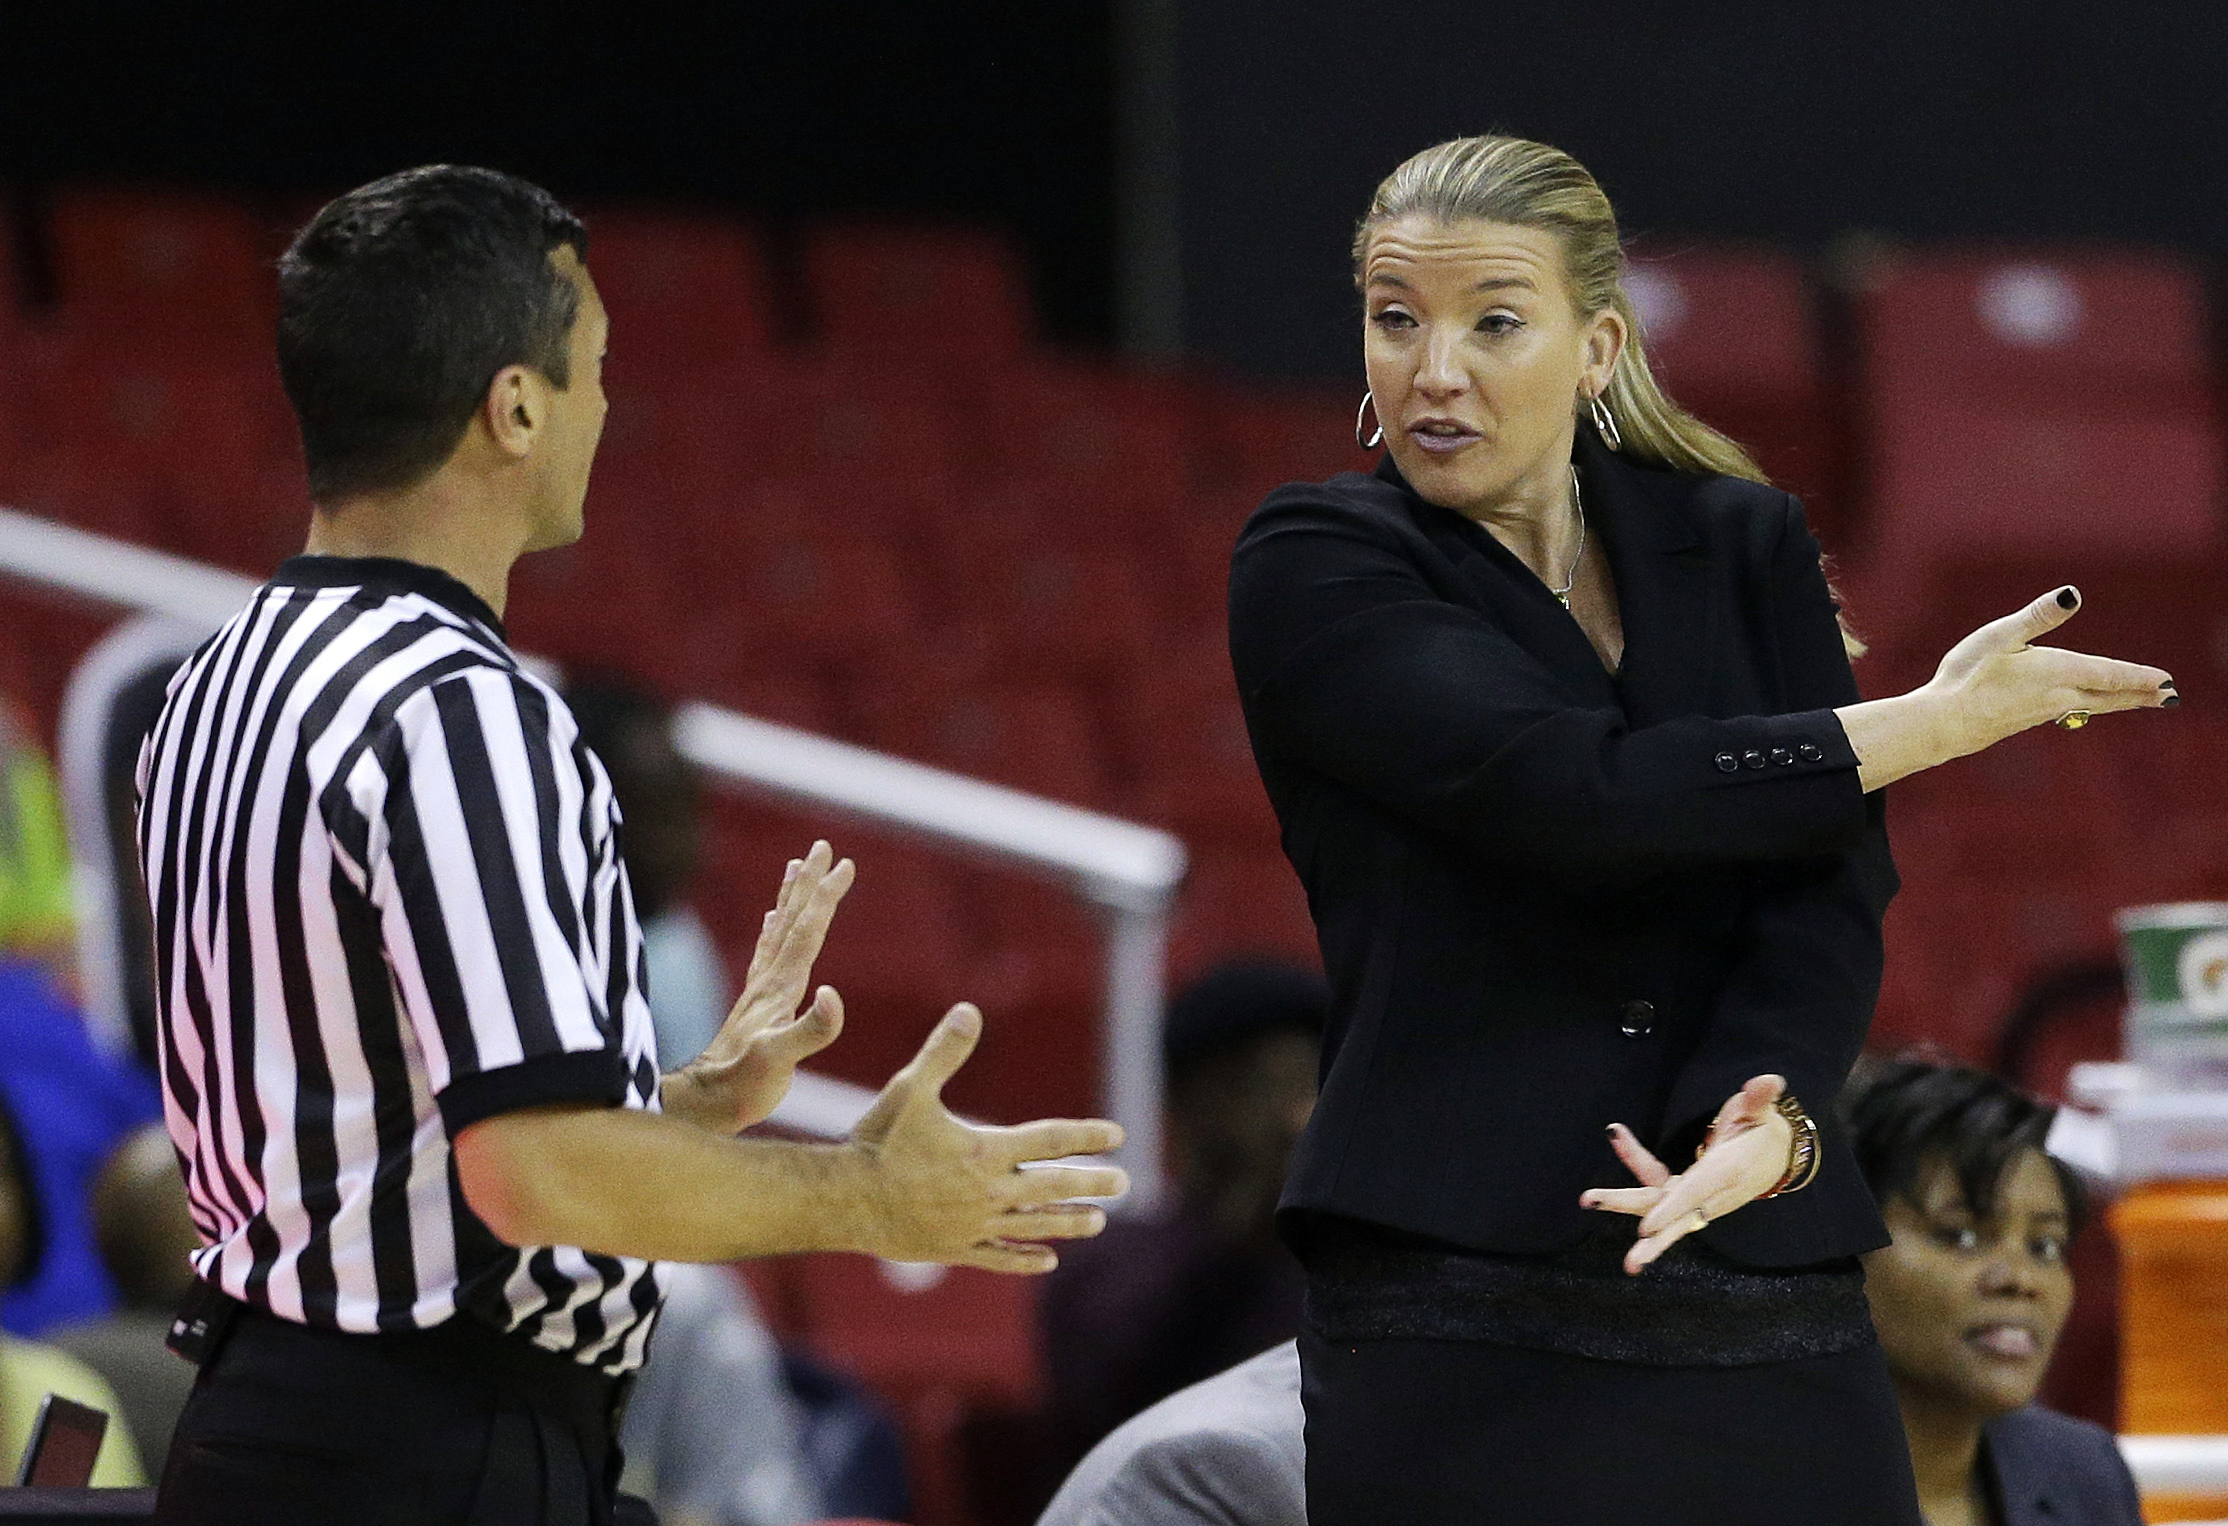 Siena head coach Ali Jaques, right, speaks with an official in the second half of an NCAA college basketball game against Maryland in College Park, Md., Monday, Dec. 9, 2013. (AP Photo/Patrick Semansky)